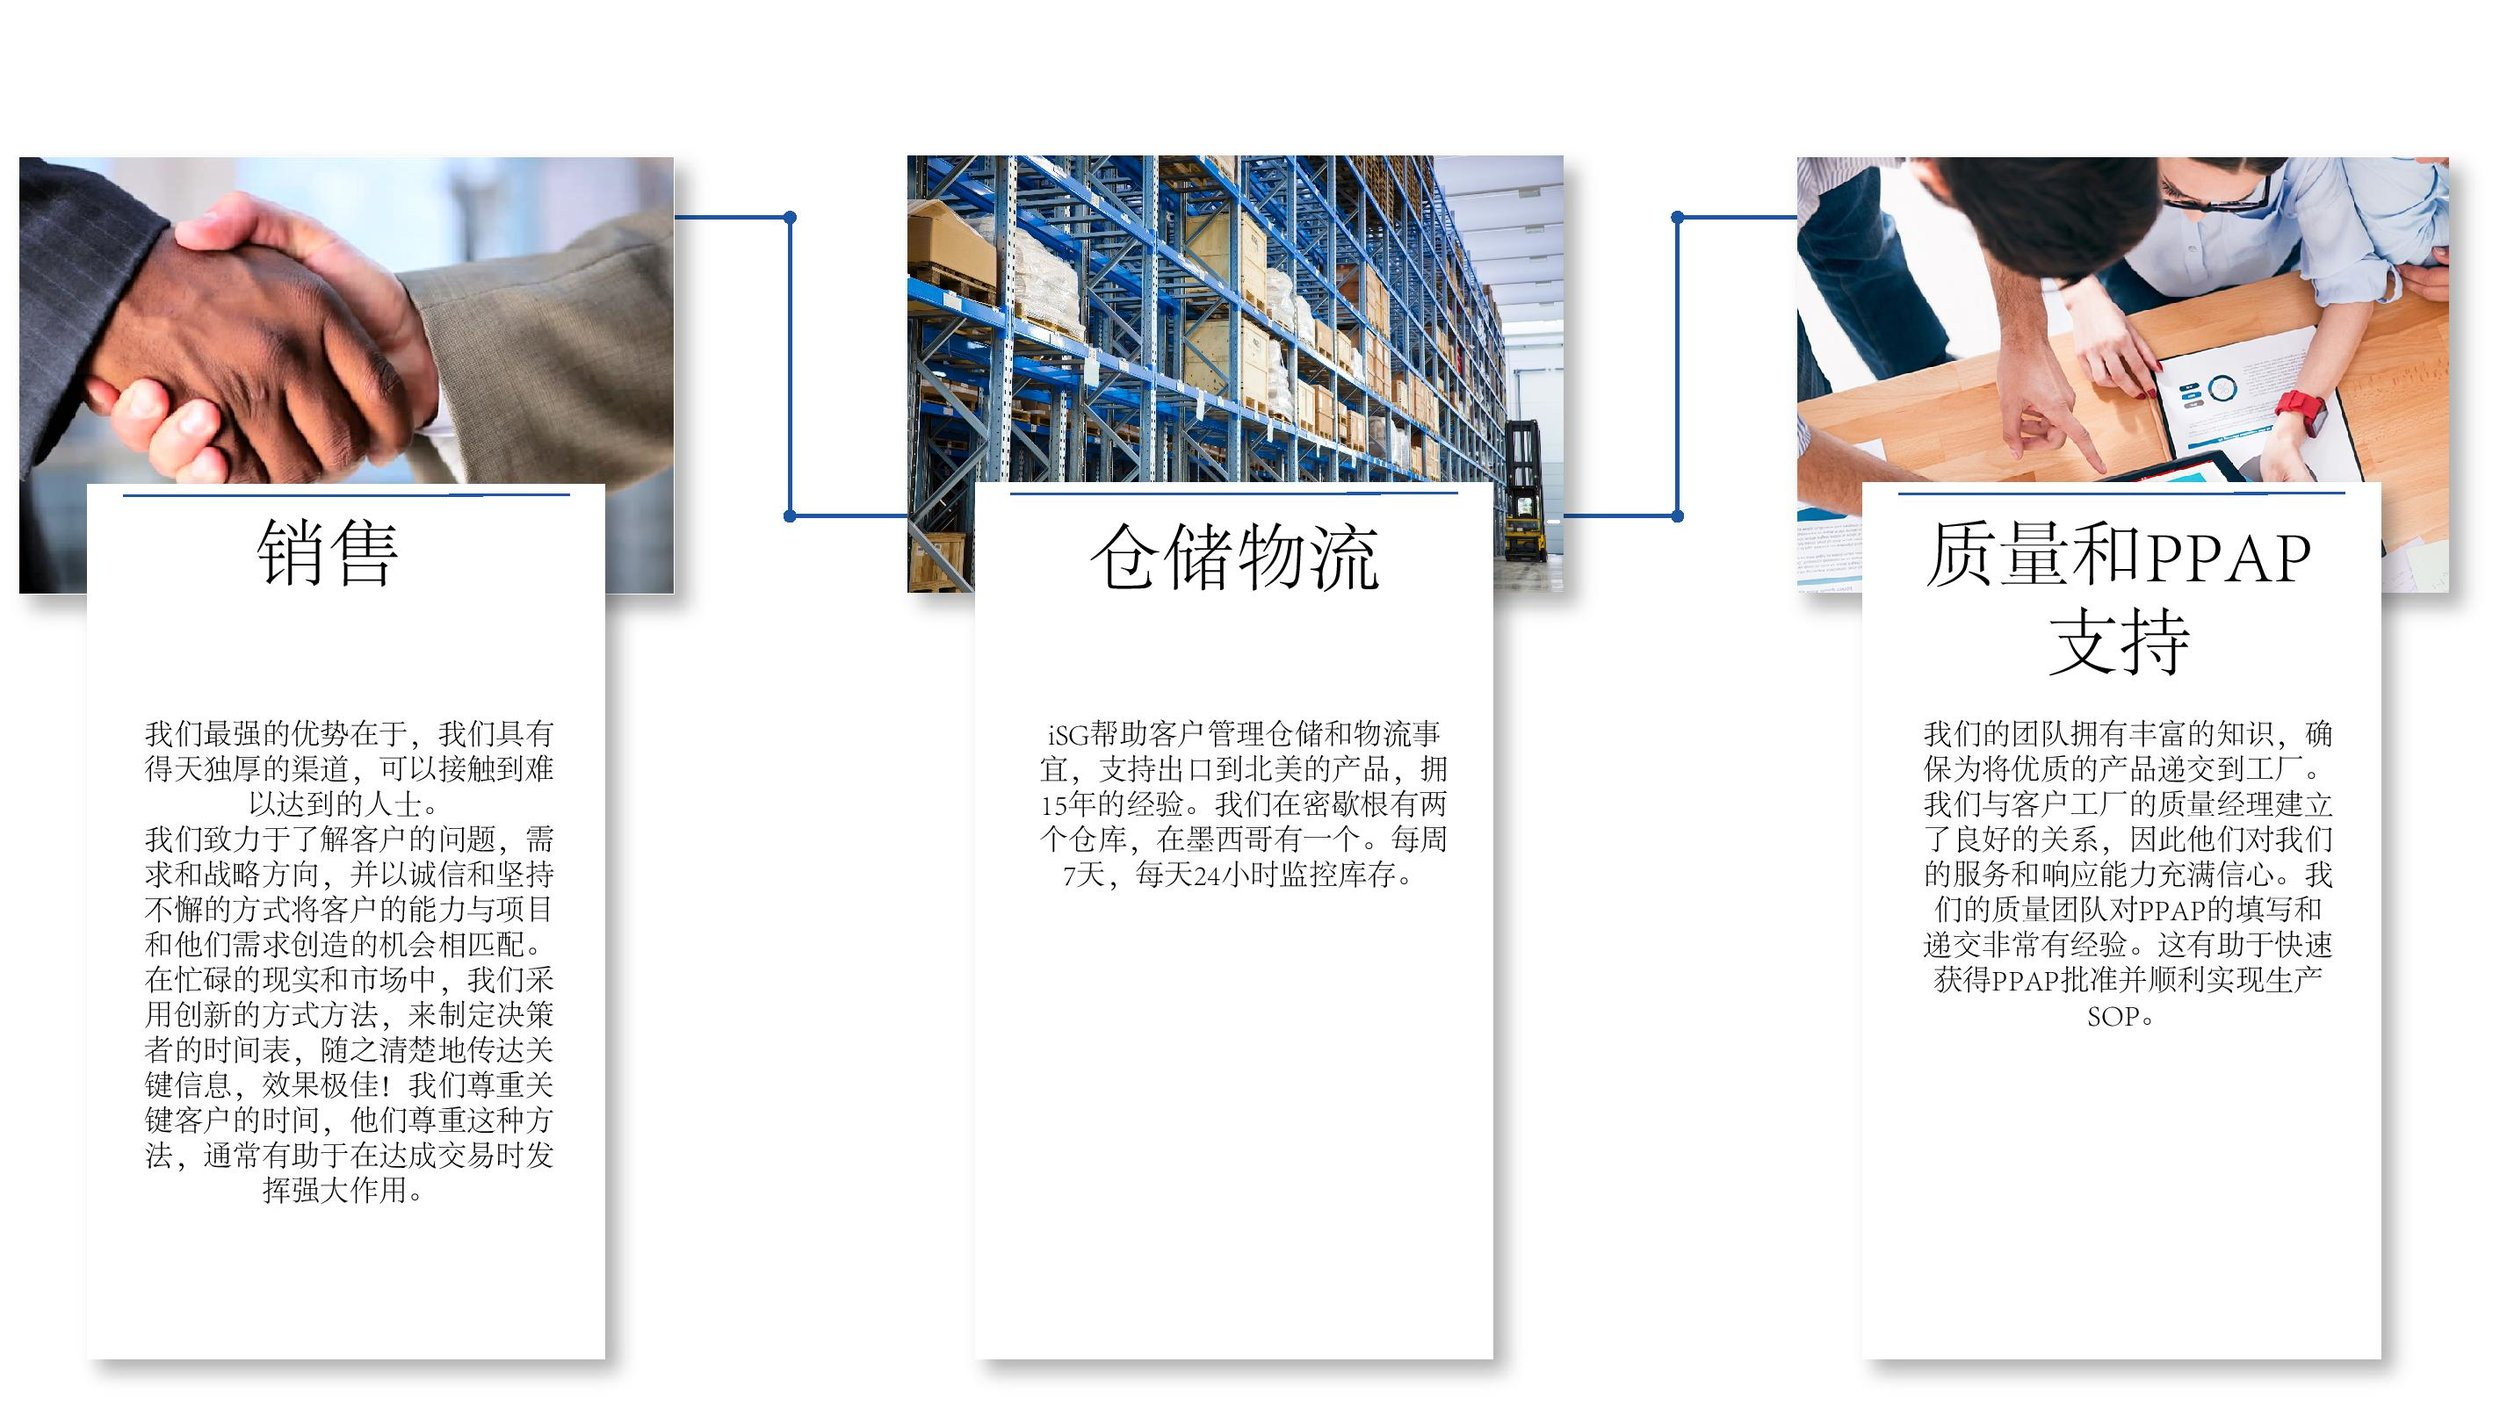 Services - Chinese-page-001.jpg